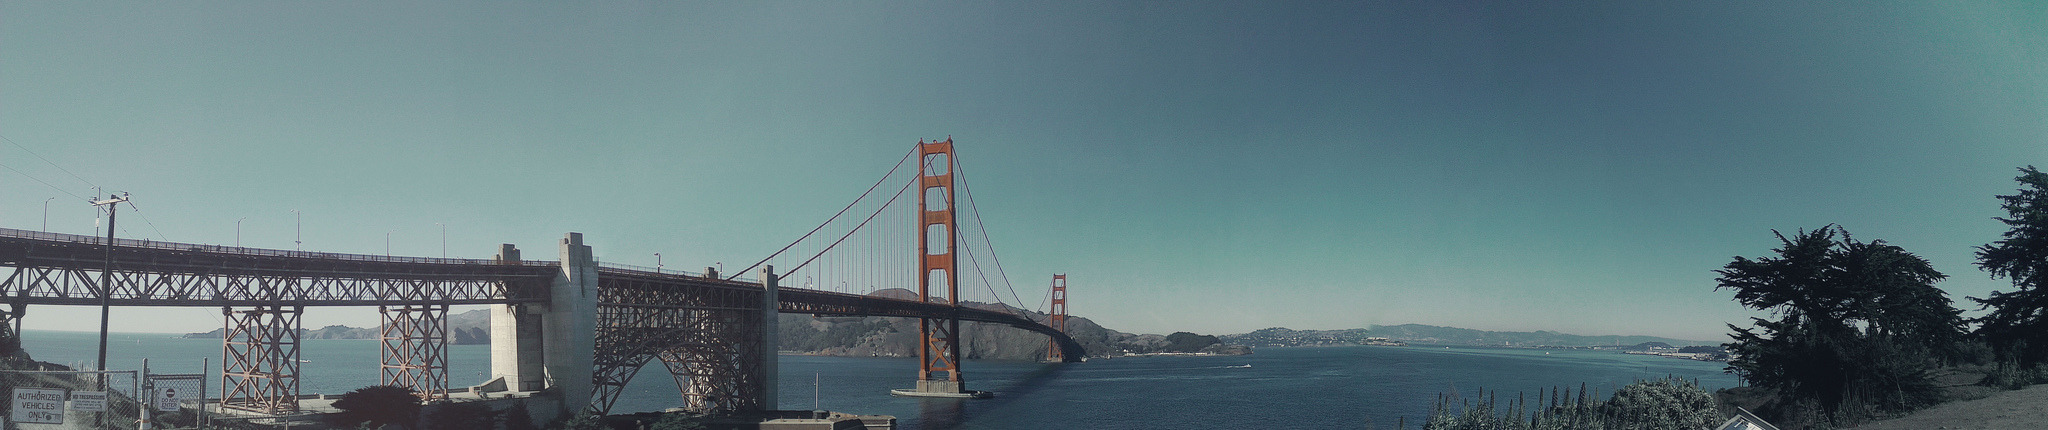 Panorama of San Francisco's Golden Gate Bridge | Taken by my phone, HTC One X